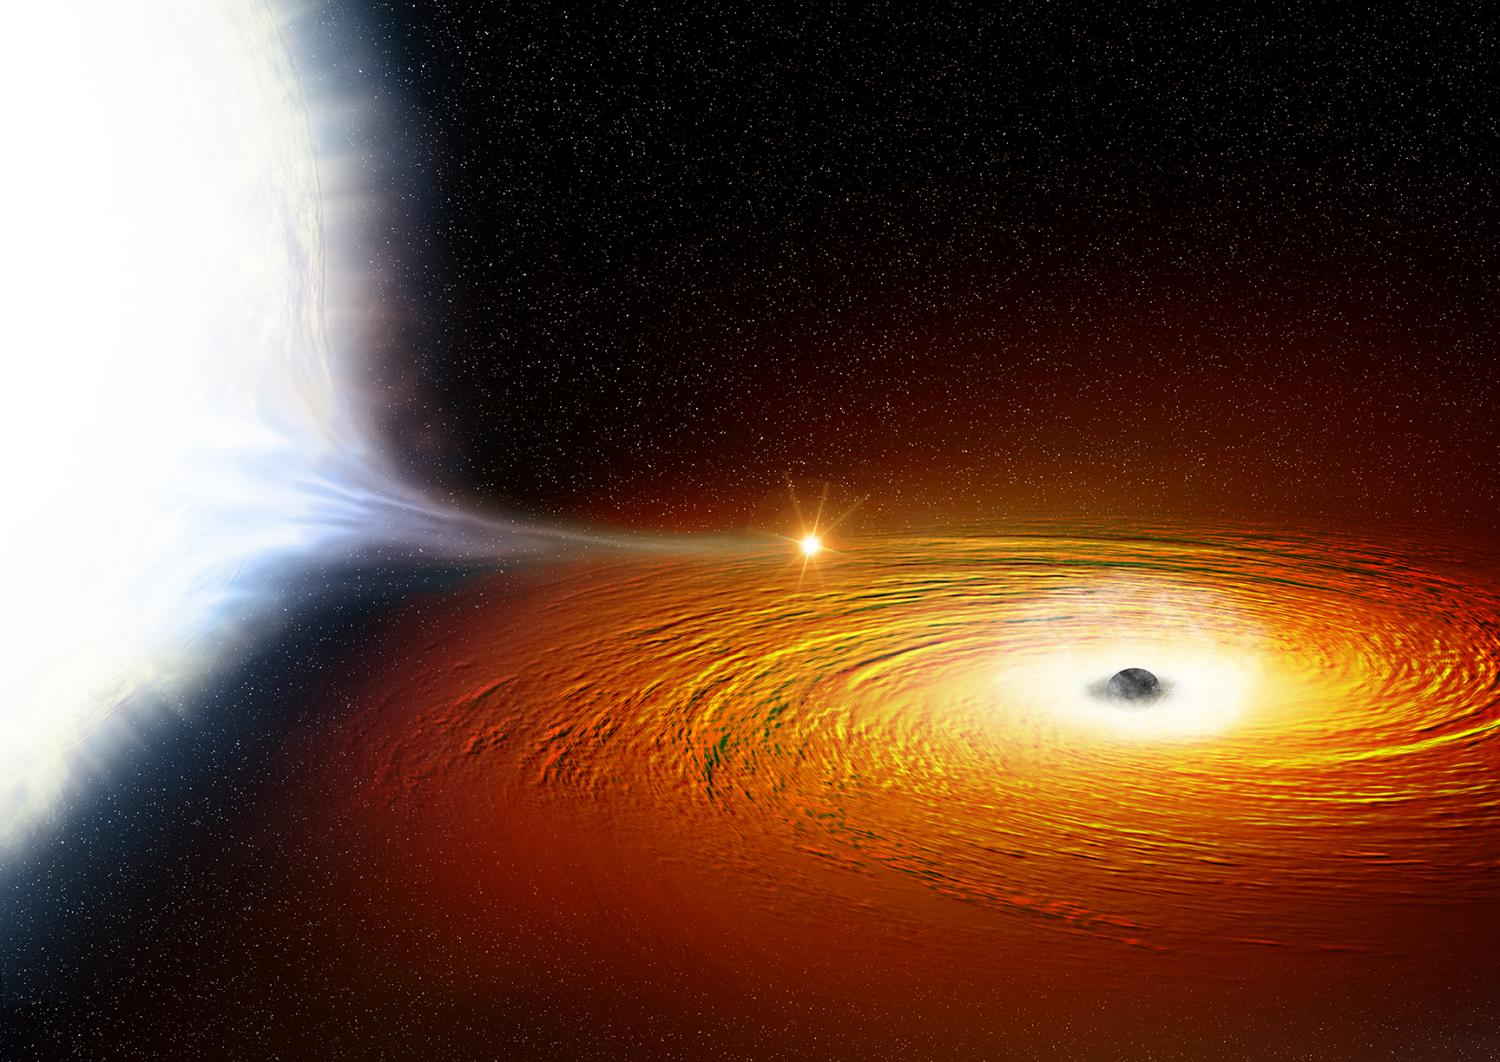 Tightest Orbital Dance Between Black Hole And Star Witnessed By Astronomers